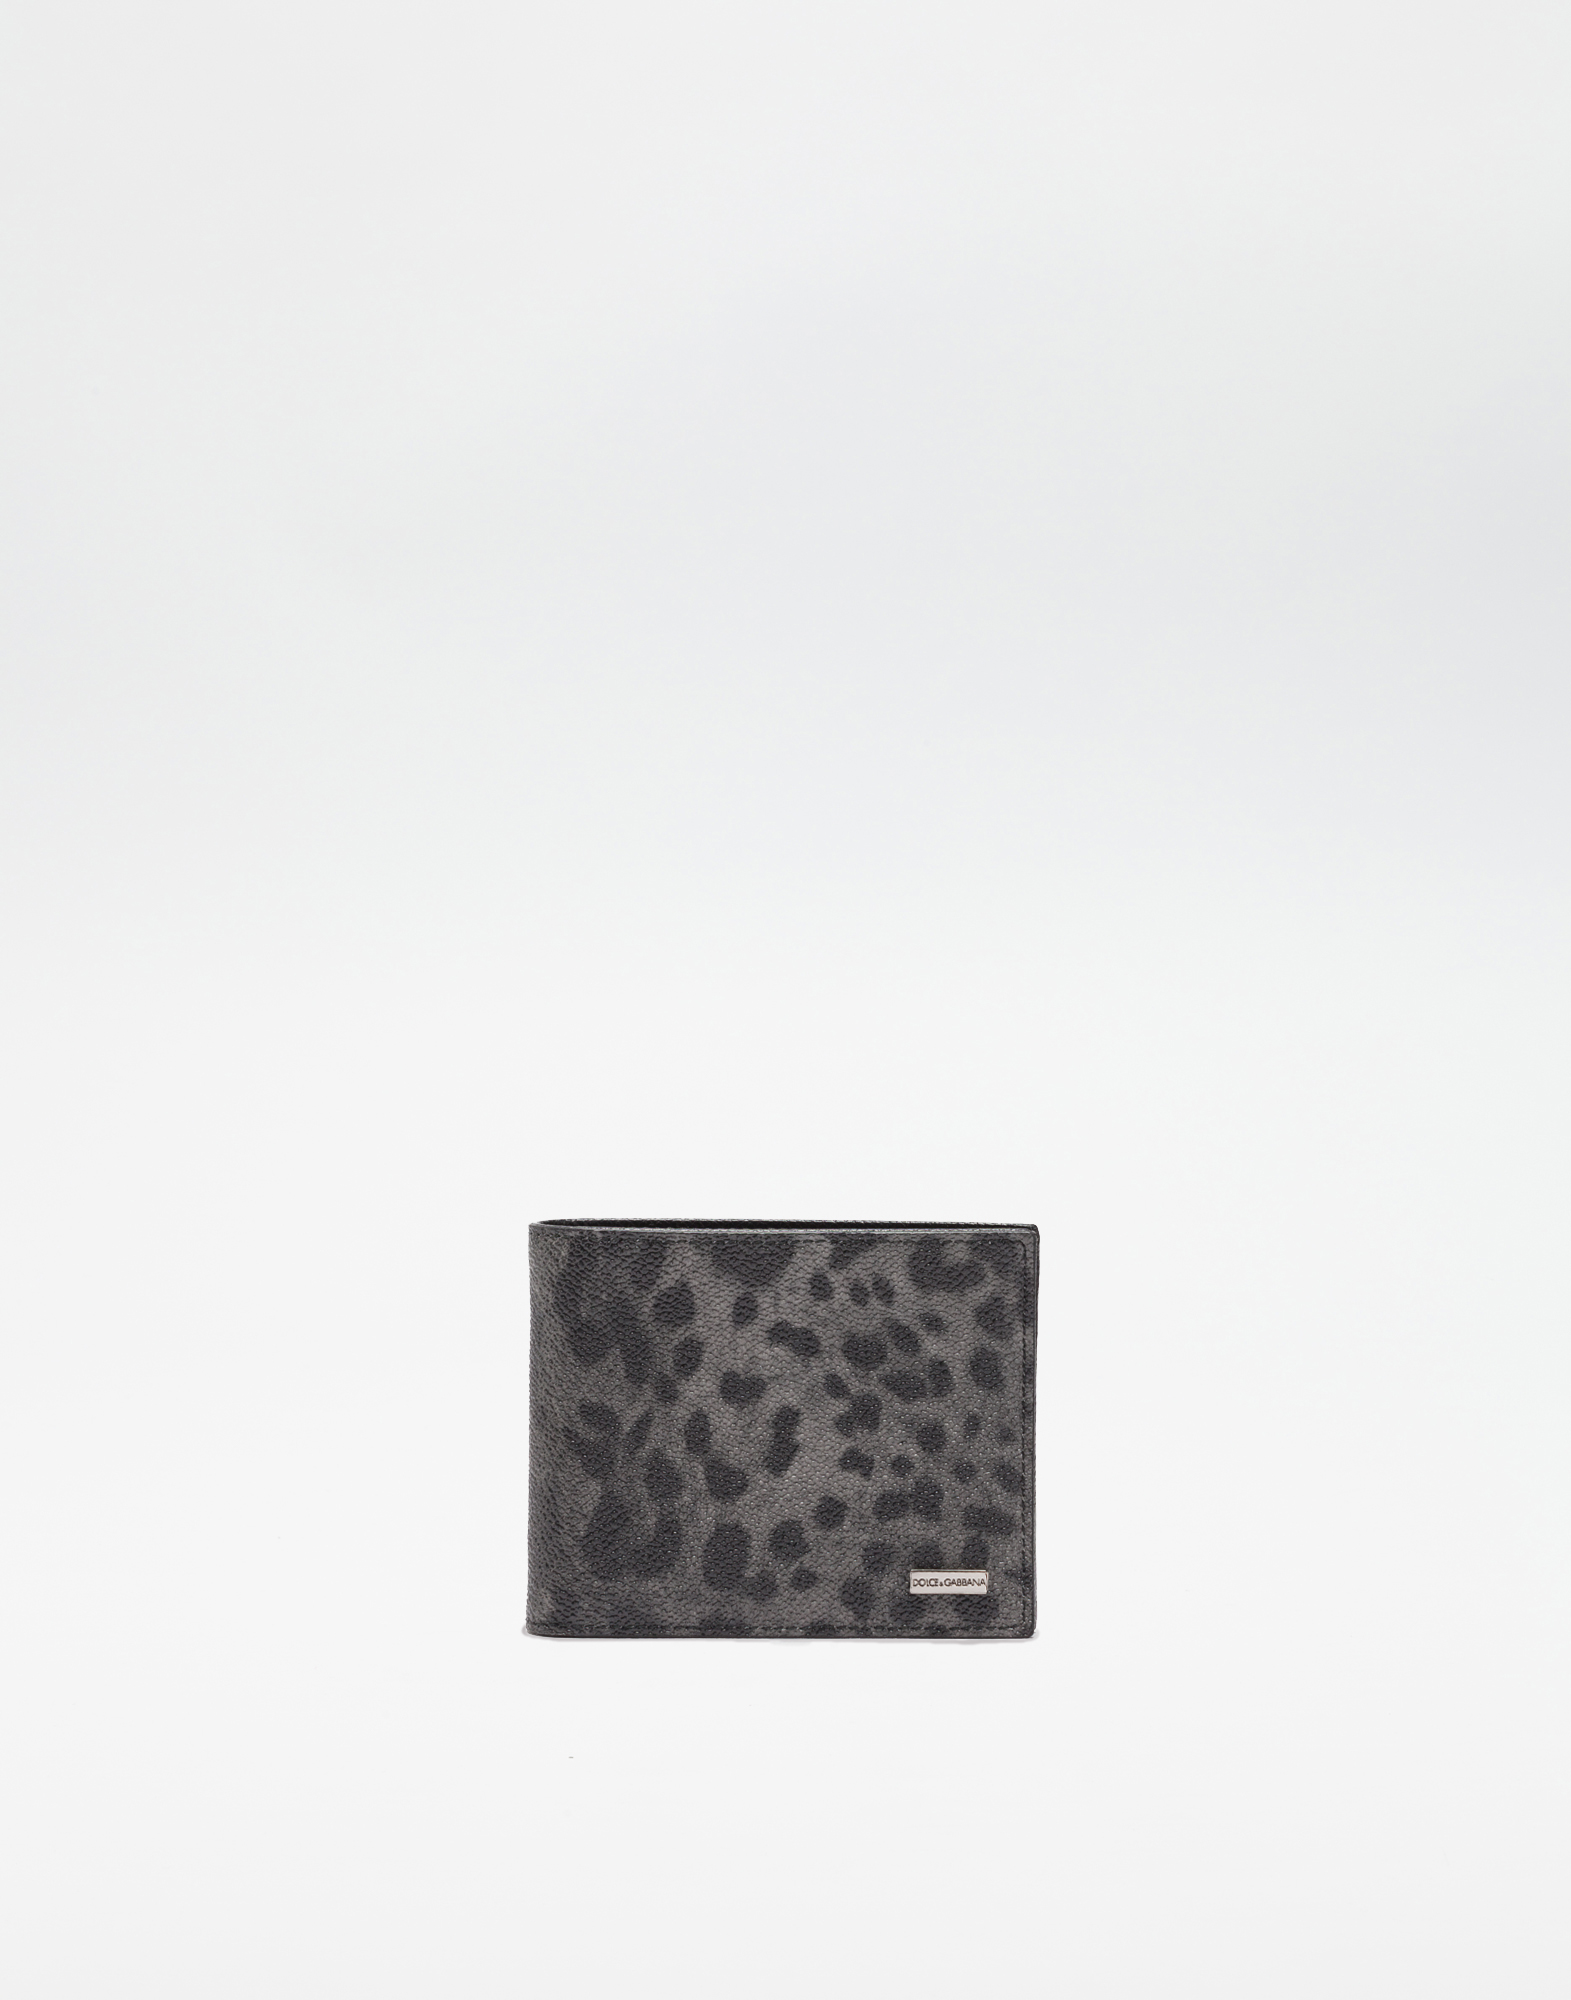 LEOPARD TEXTURED LEATHER WALLET